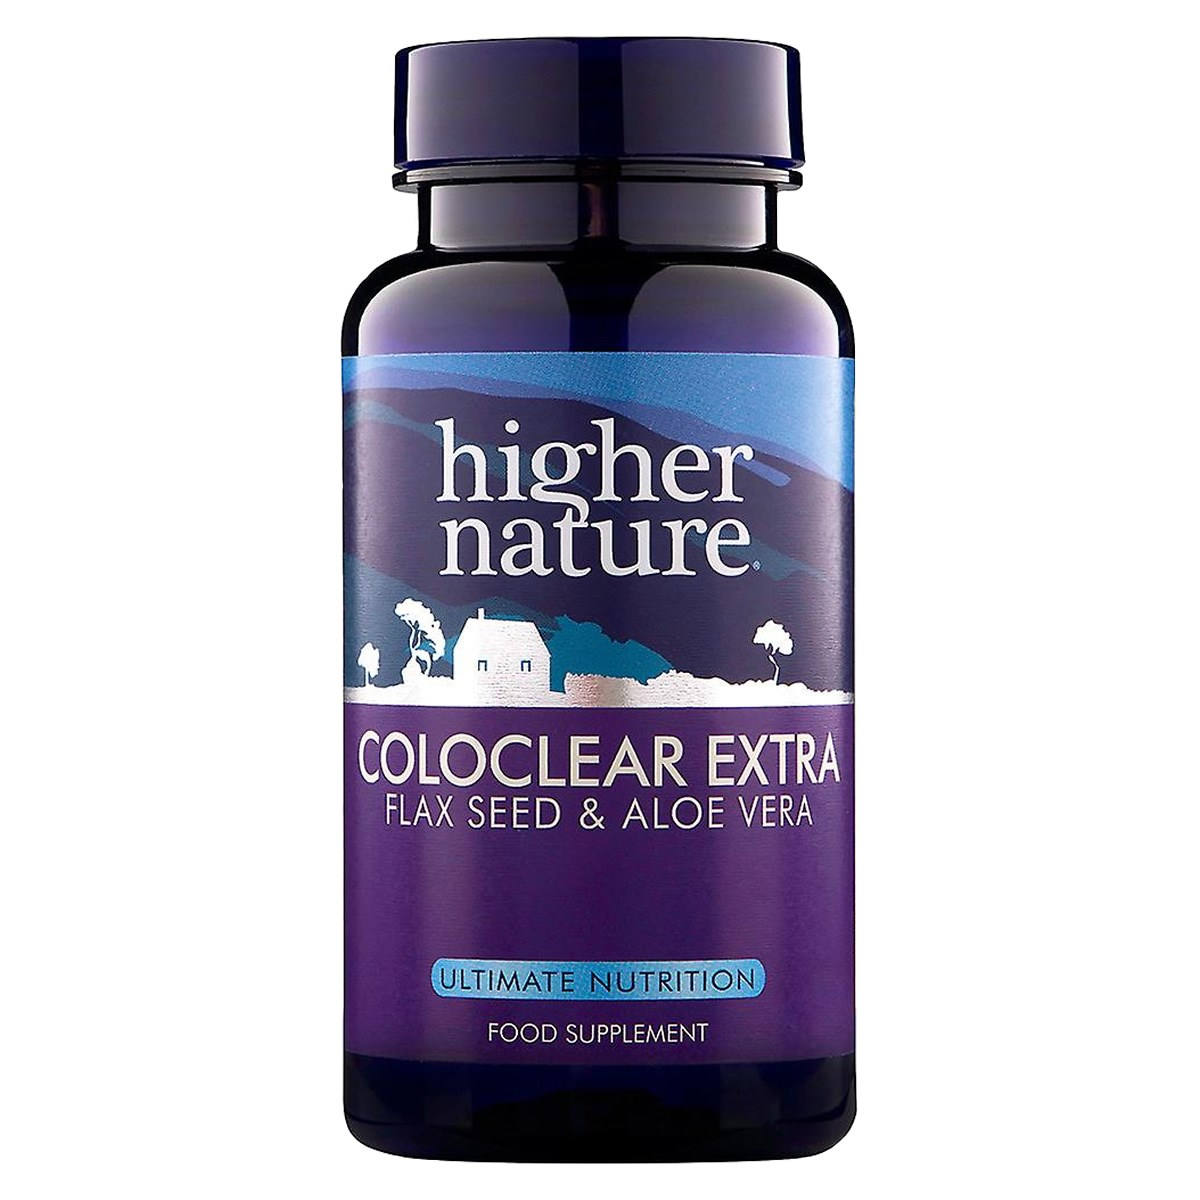 Higher Nature ColoClear Extra